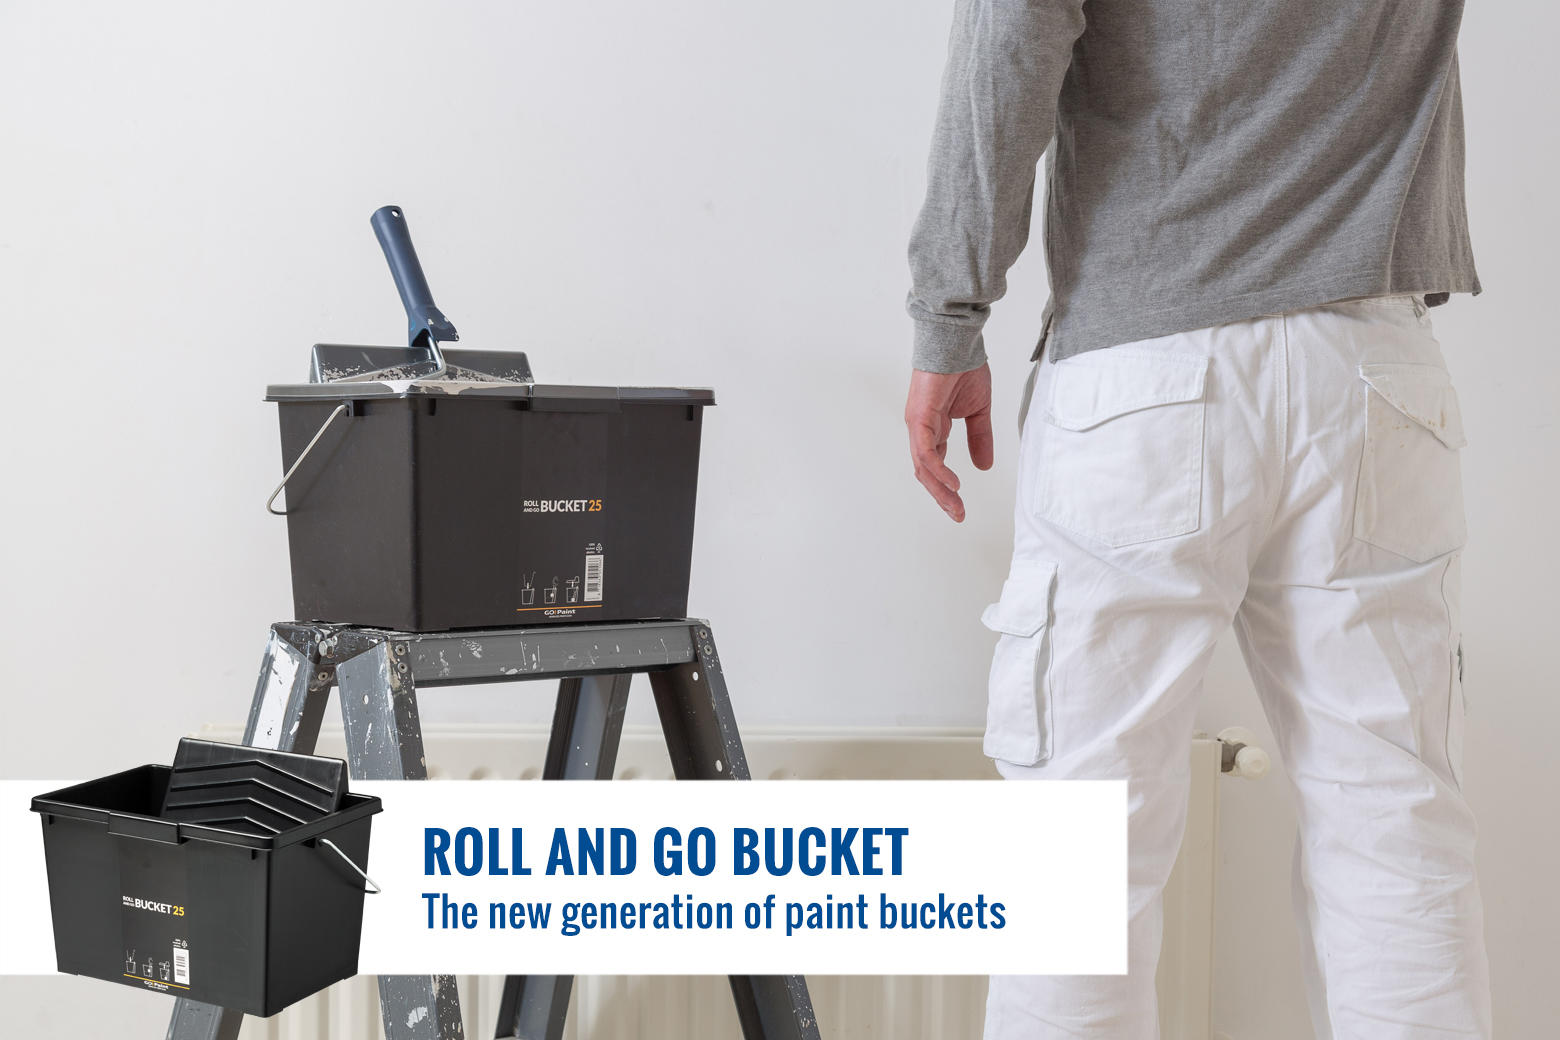 Sturdy paint buckets that als fit the ladder platform